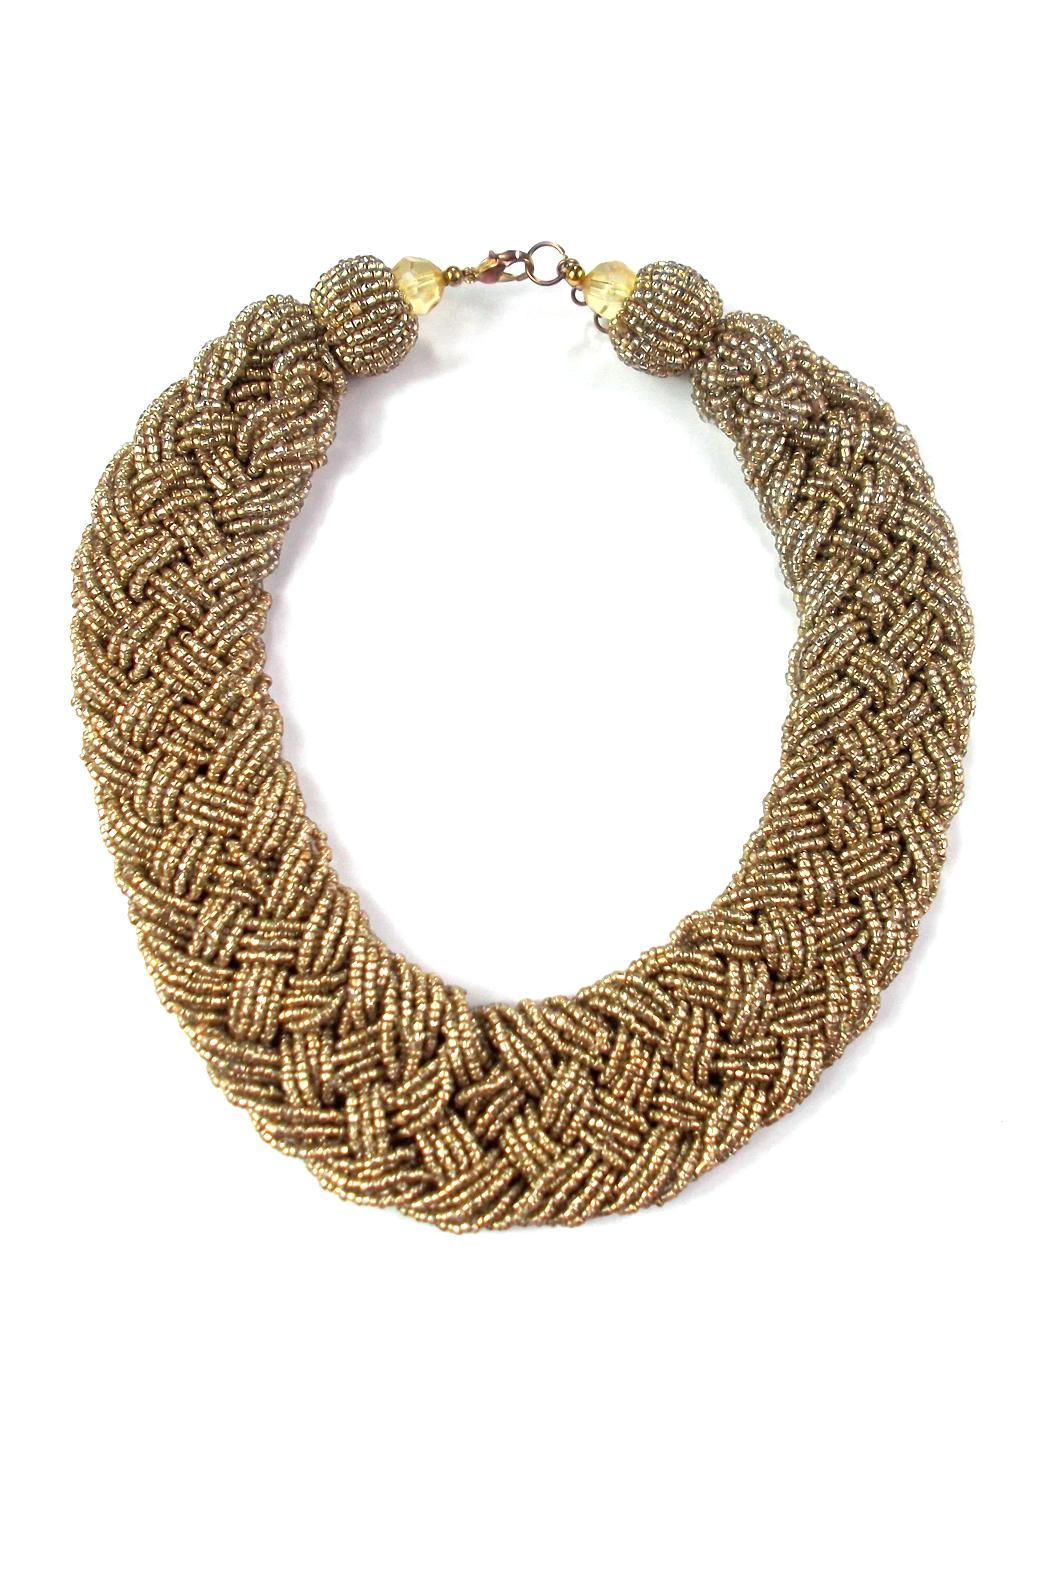 Wild Lilies Jewelry  Gold Braided Necklace - Main Image